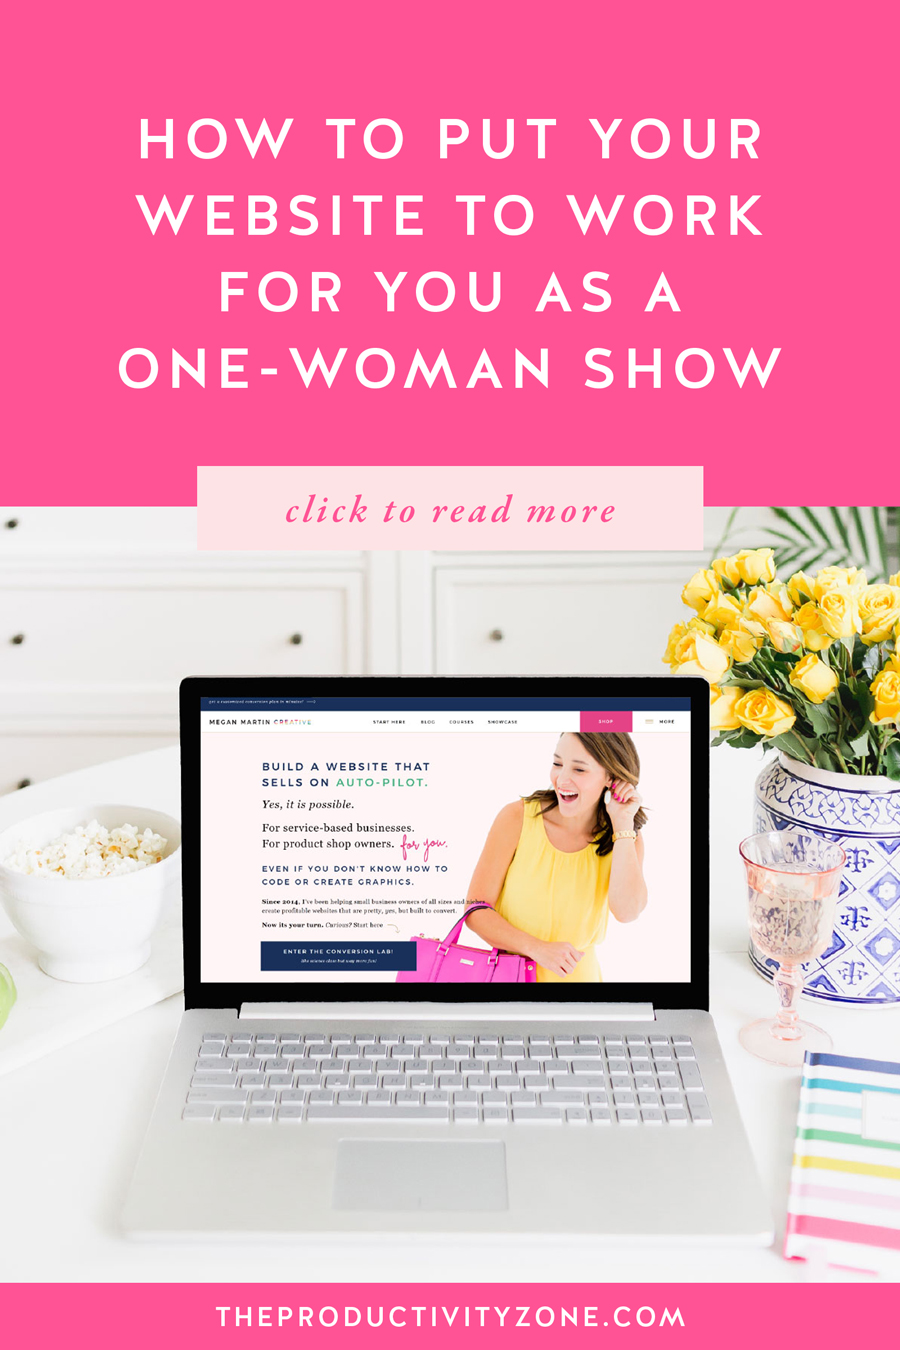 Want to know how to make your website work for and actually grow your business for you?! Megan Martin Creative shares 5 things you can do right now, this week to turn your website into a system that works and converts for you on autopilot!!